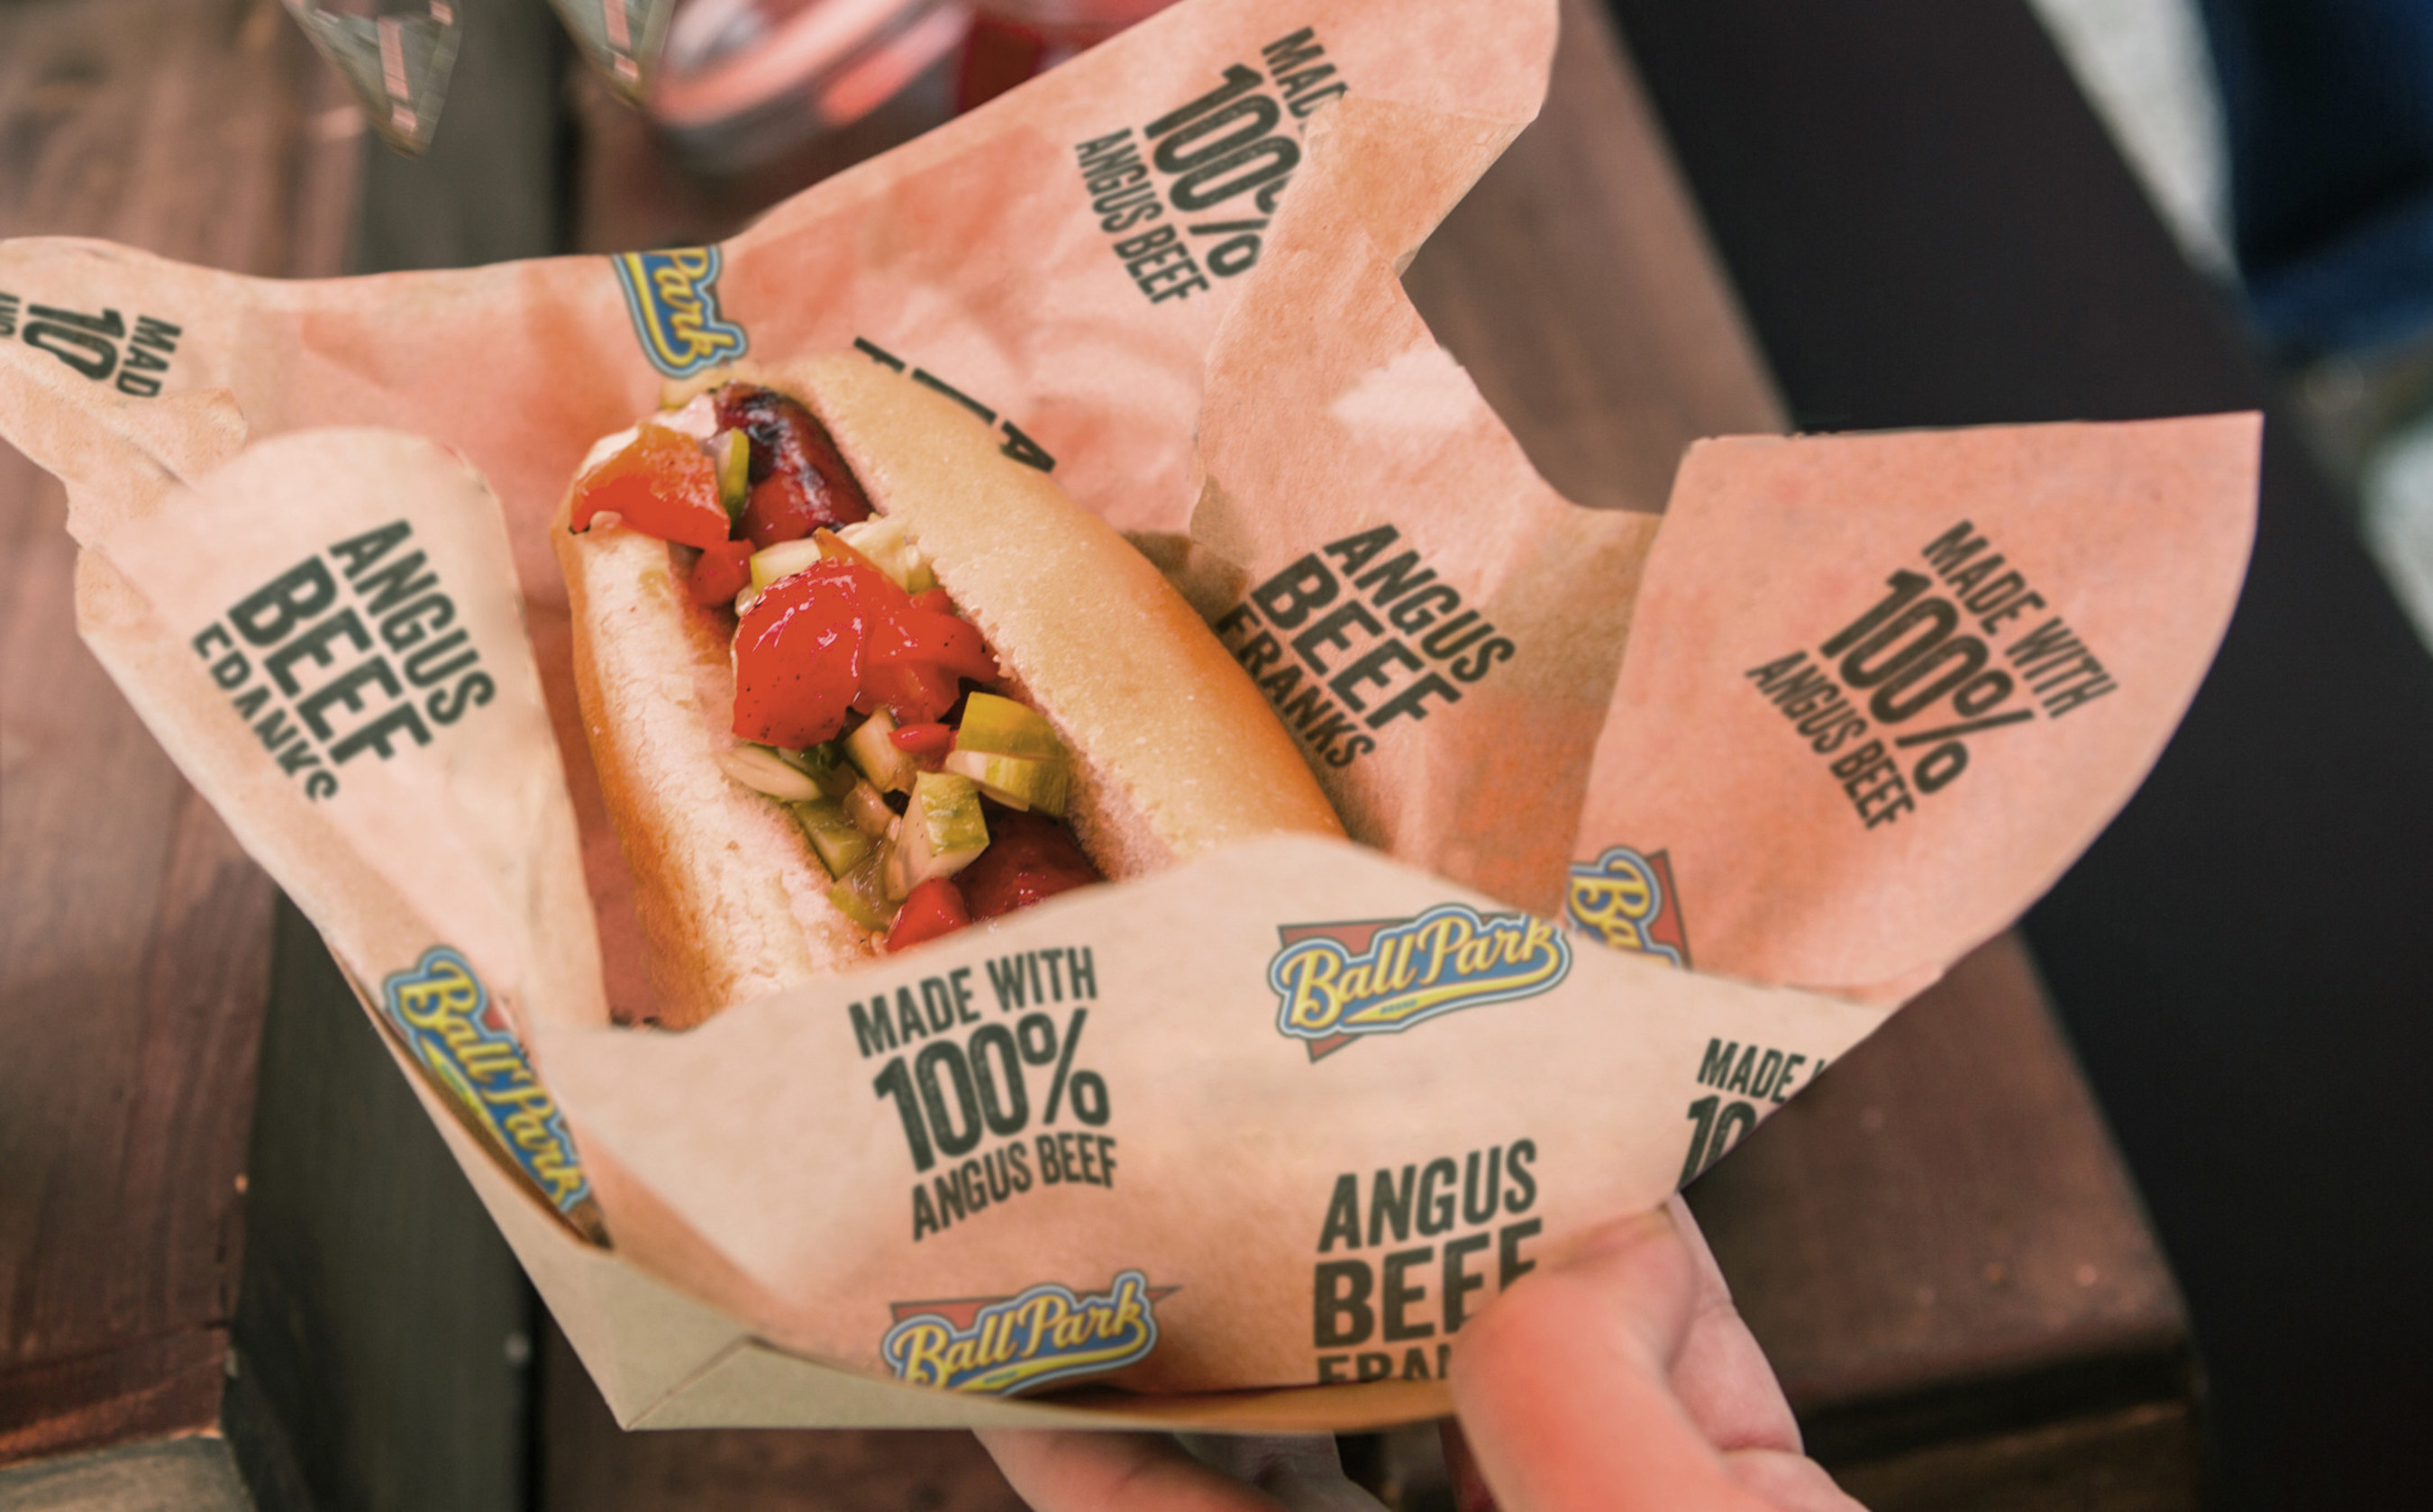 Ball Park Franks, made with 100% Angus Beef.